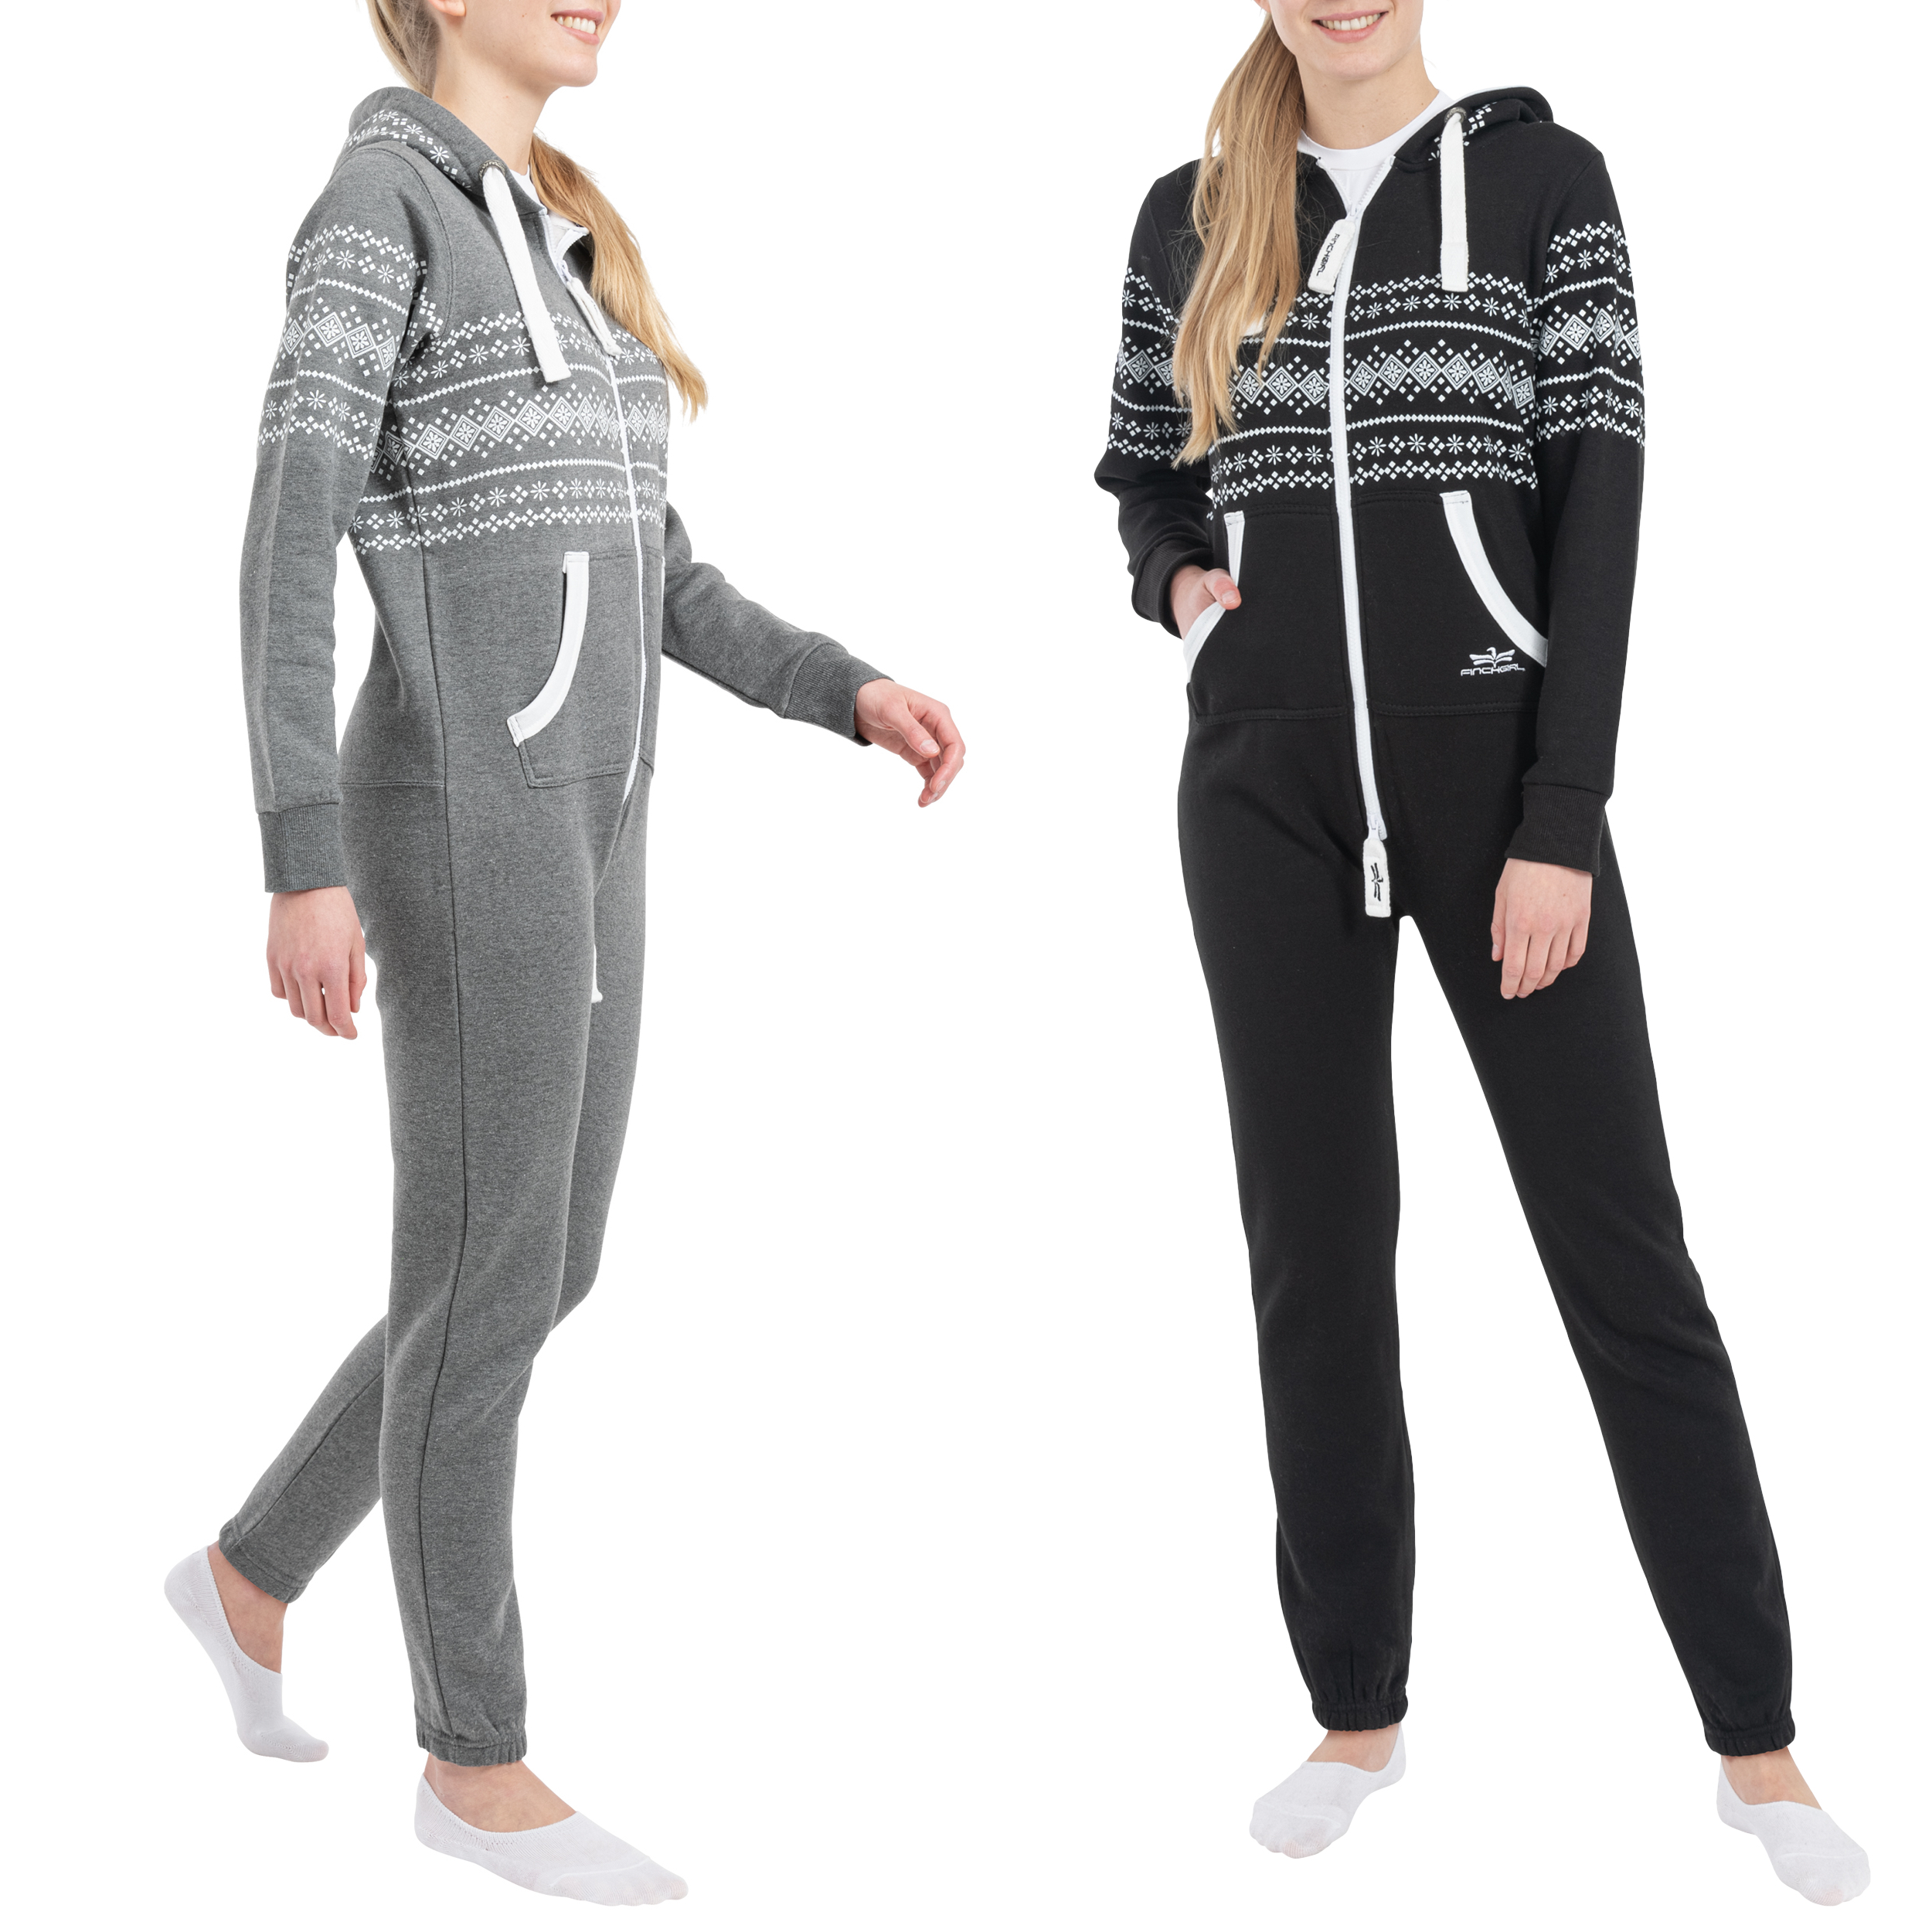 finchgirl azteken muster damen jumpsuit overall jogging training anzug einteiler ebay. Black Bedroom Furniture Sets. Home Design Ideas